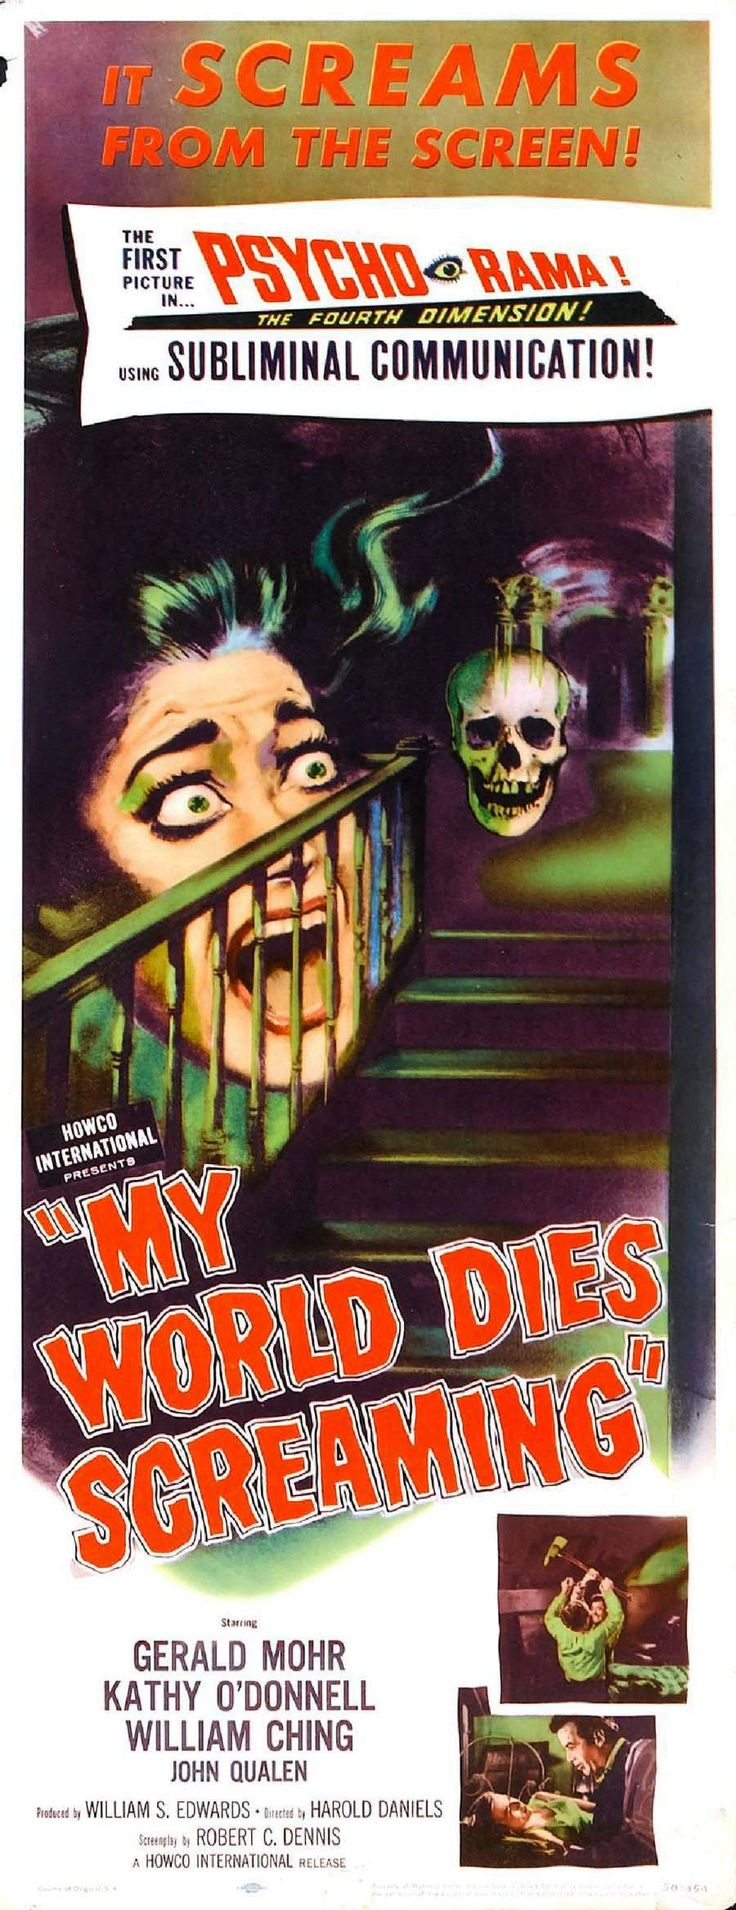 My World Dies Screaming (1958)